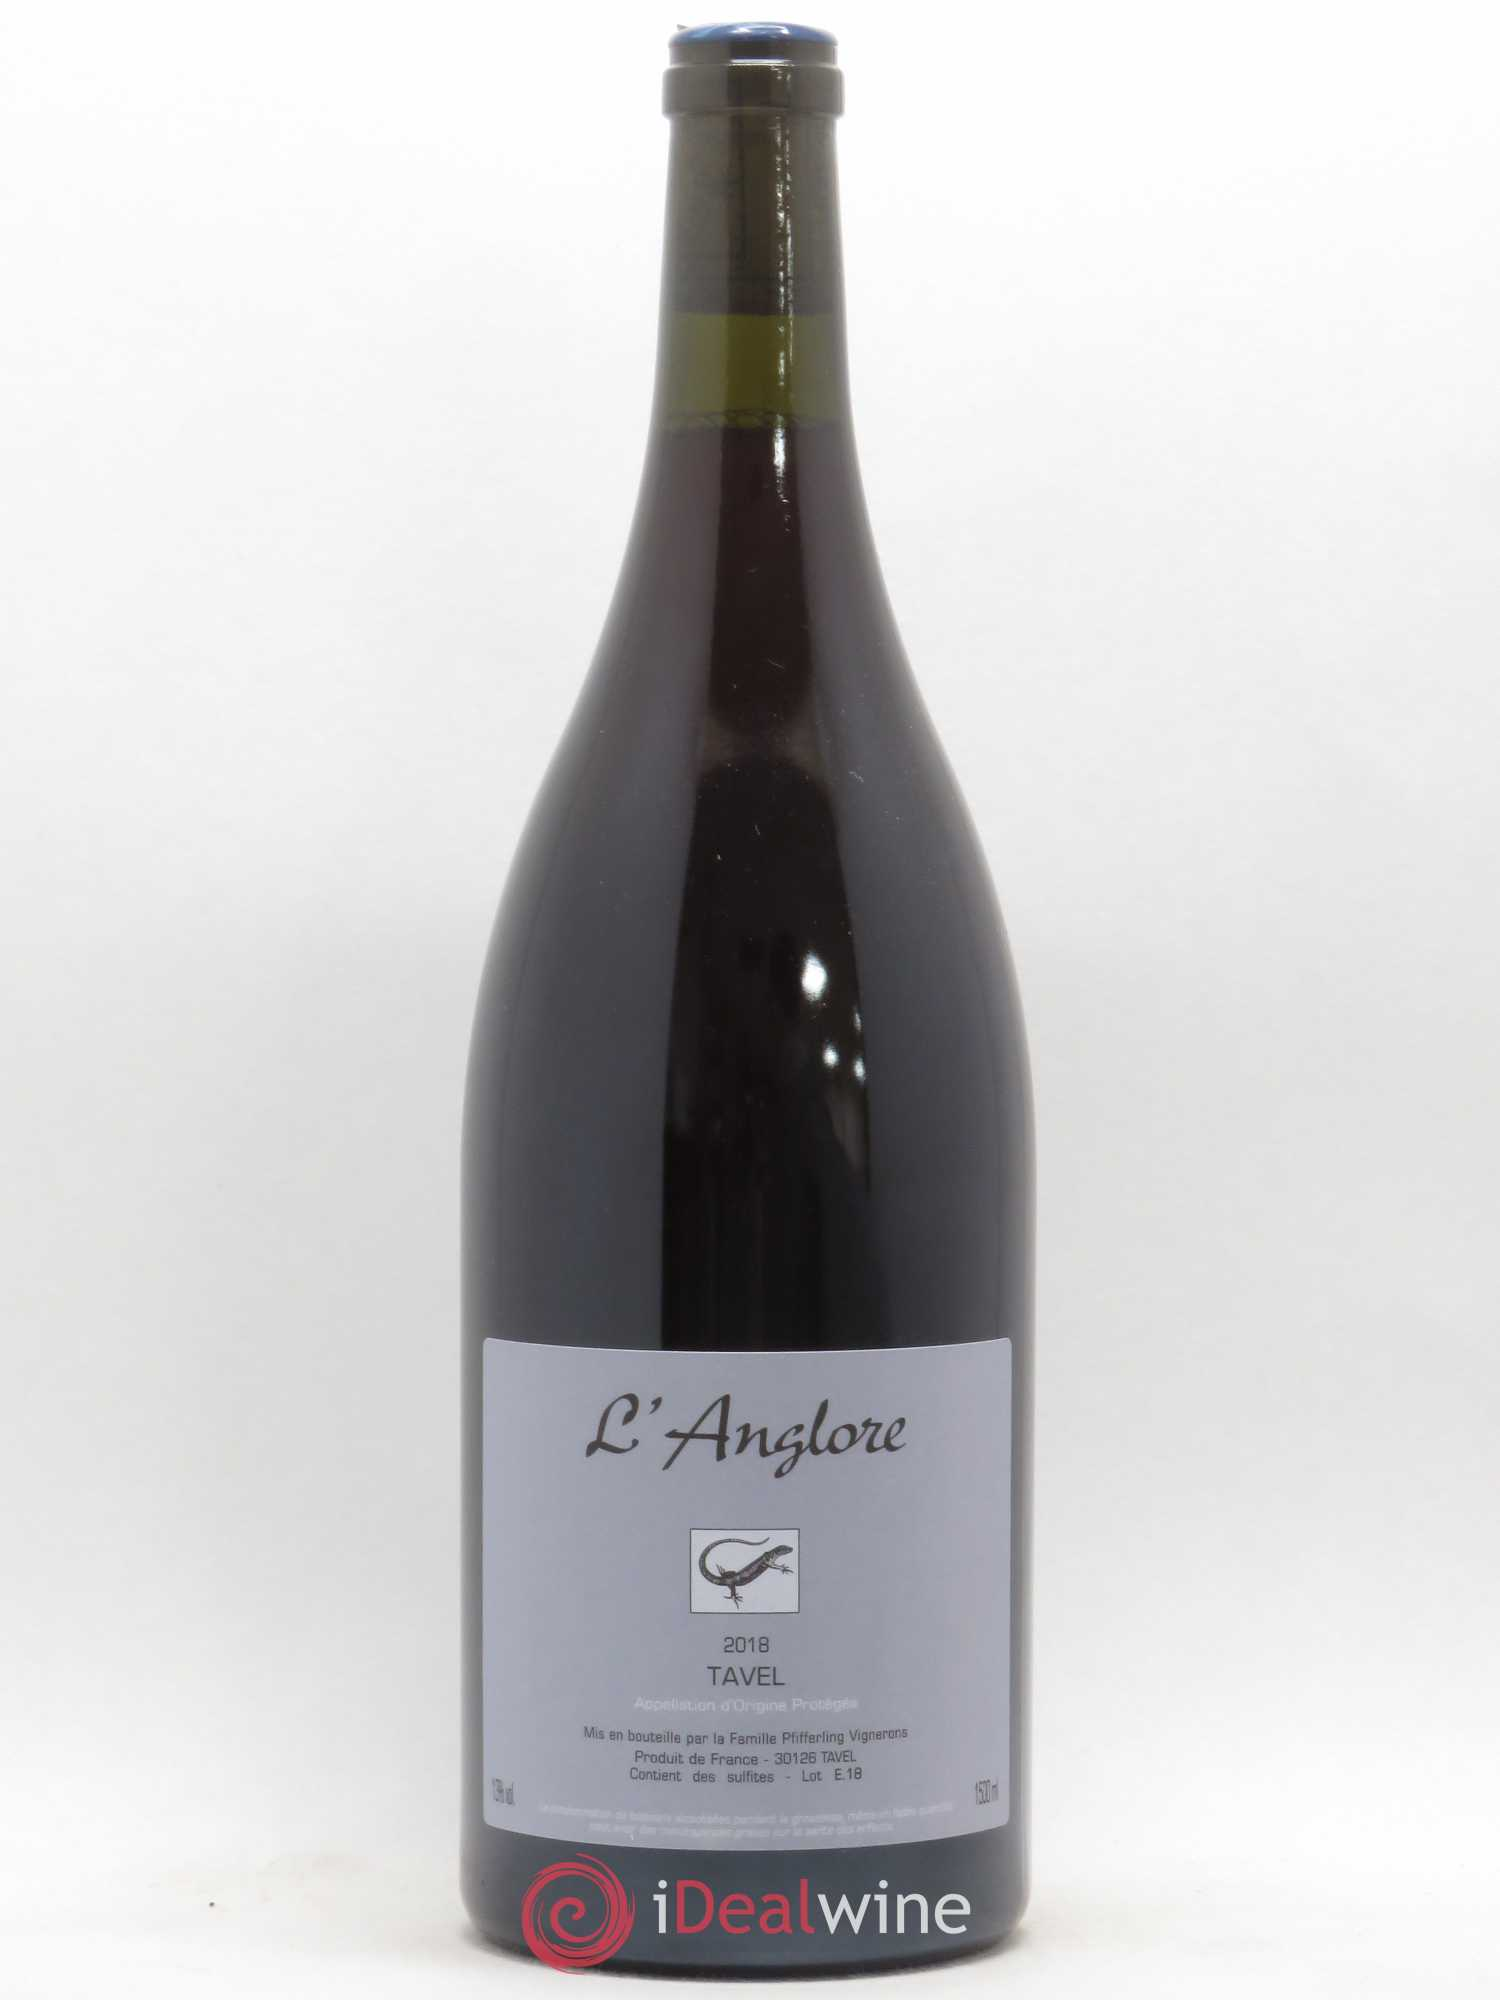 Tavel L'Anglore  2018 - Lot of 1 Magnum